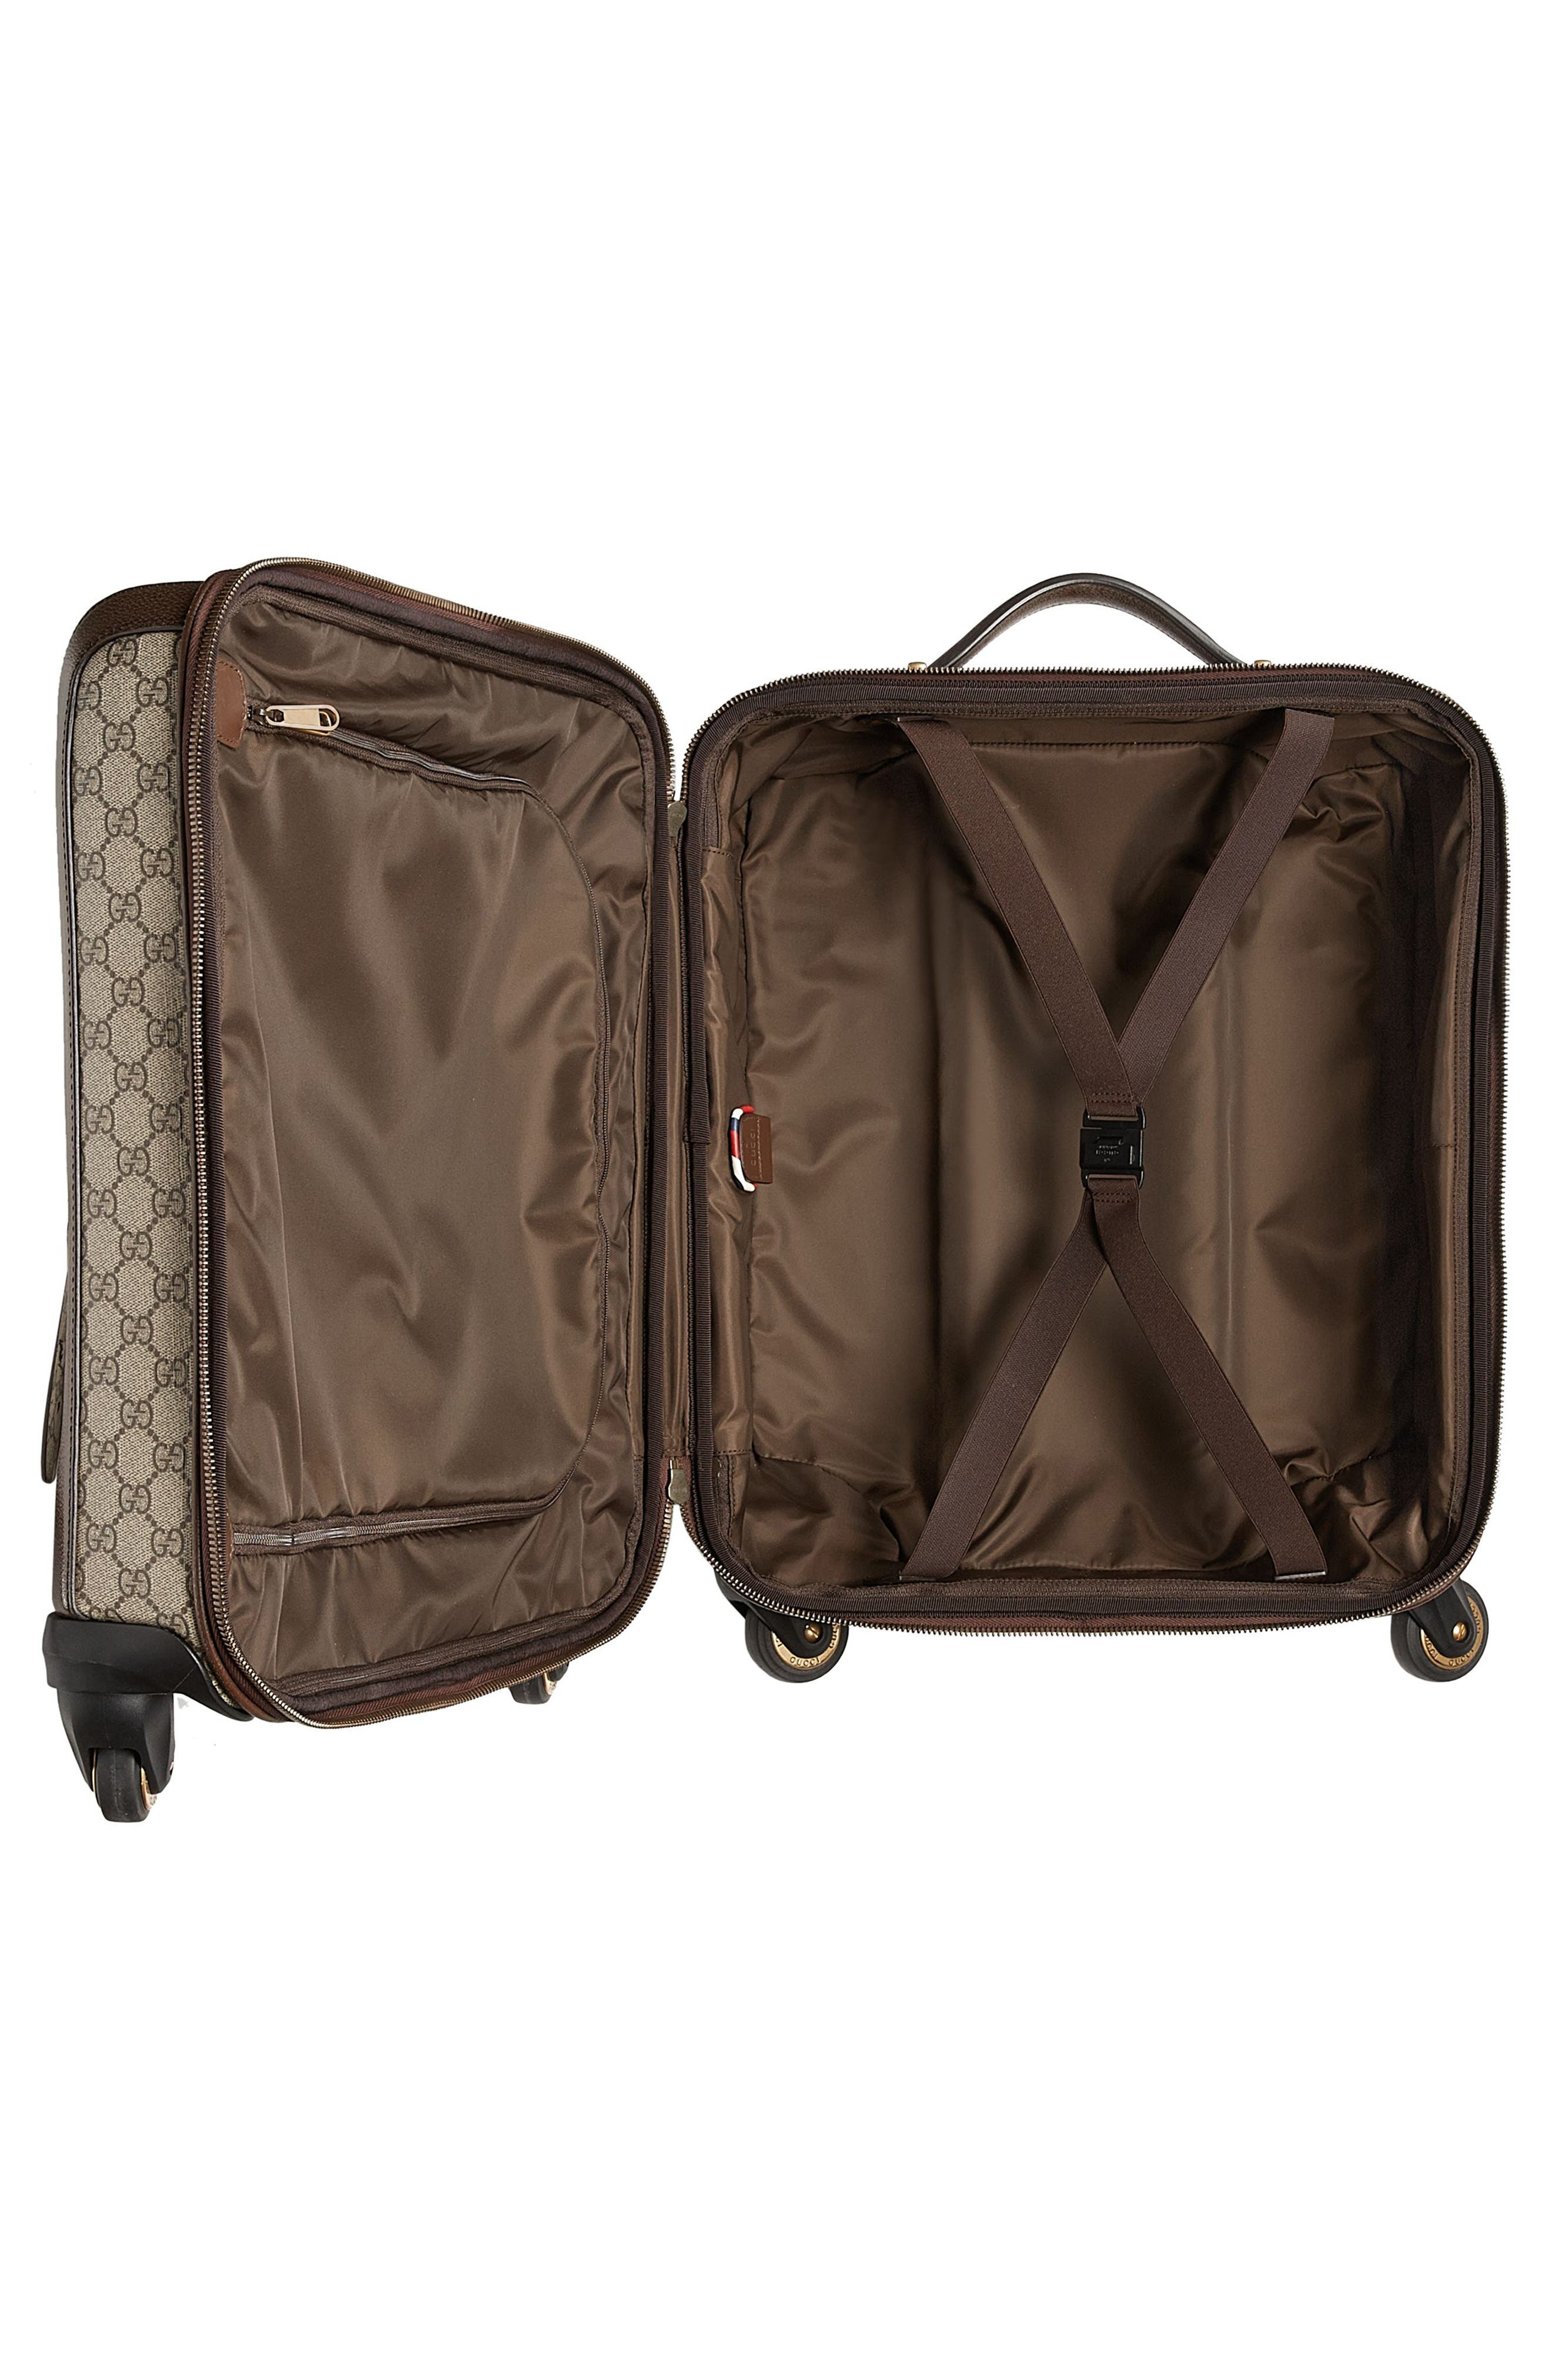 Courier GG Supreme Patches Carry-On,                             Alternate thumbnail 2, color,                             250